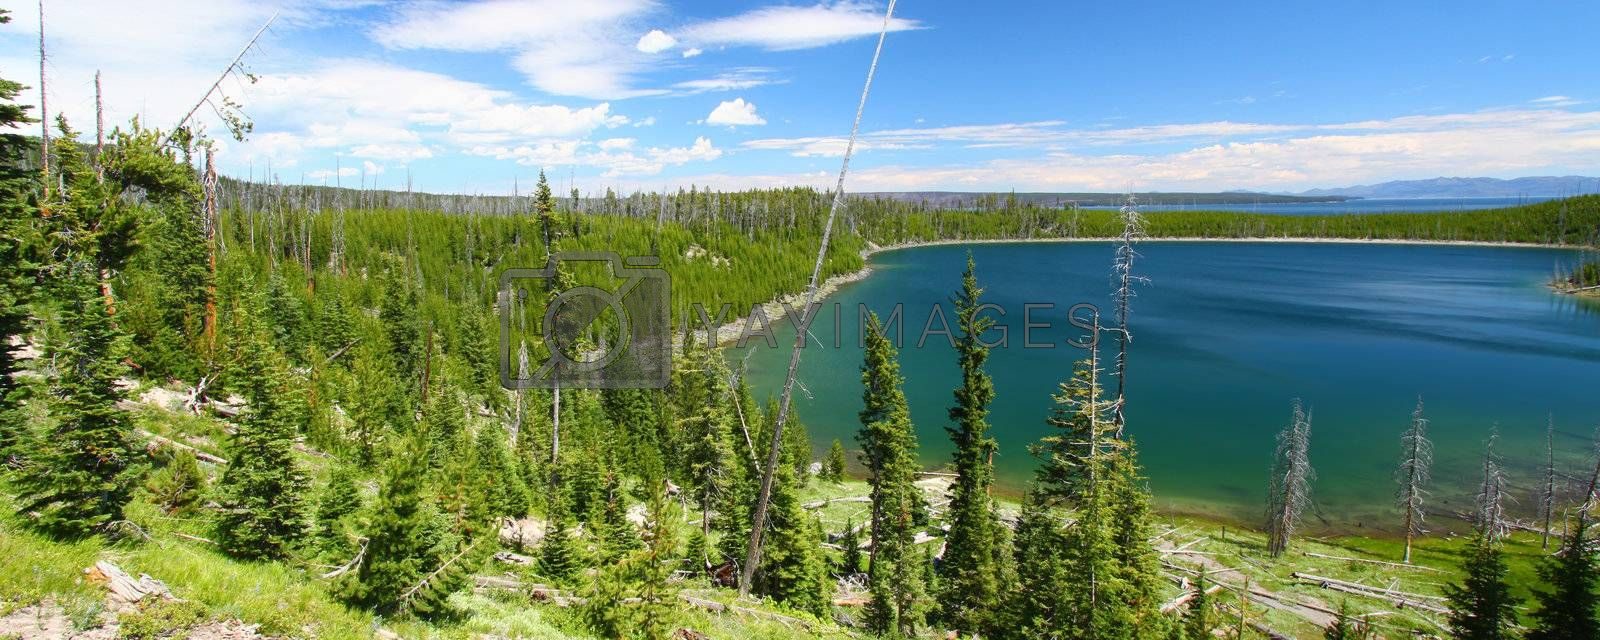 Magnificent Duck Lake of Yellowstone National Park on a summer day - Wyoming, USA.